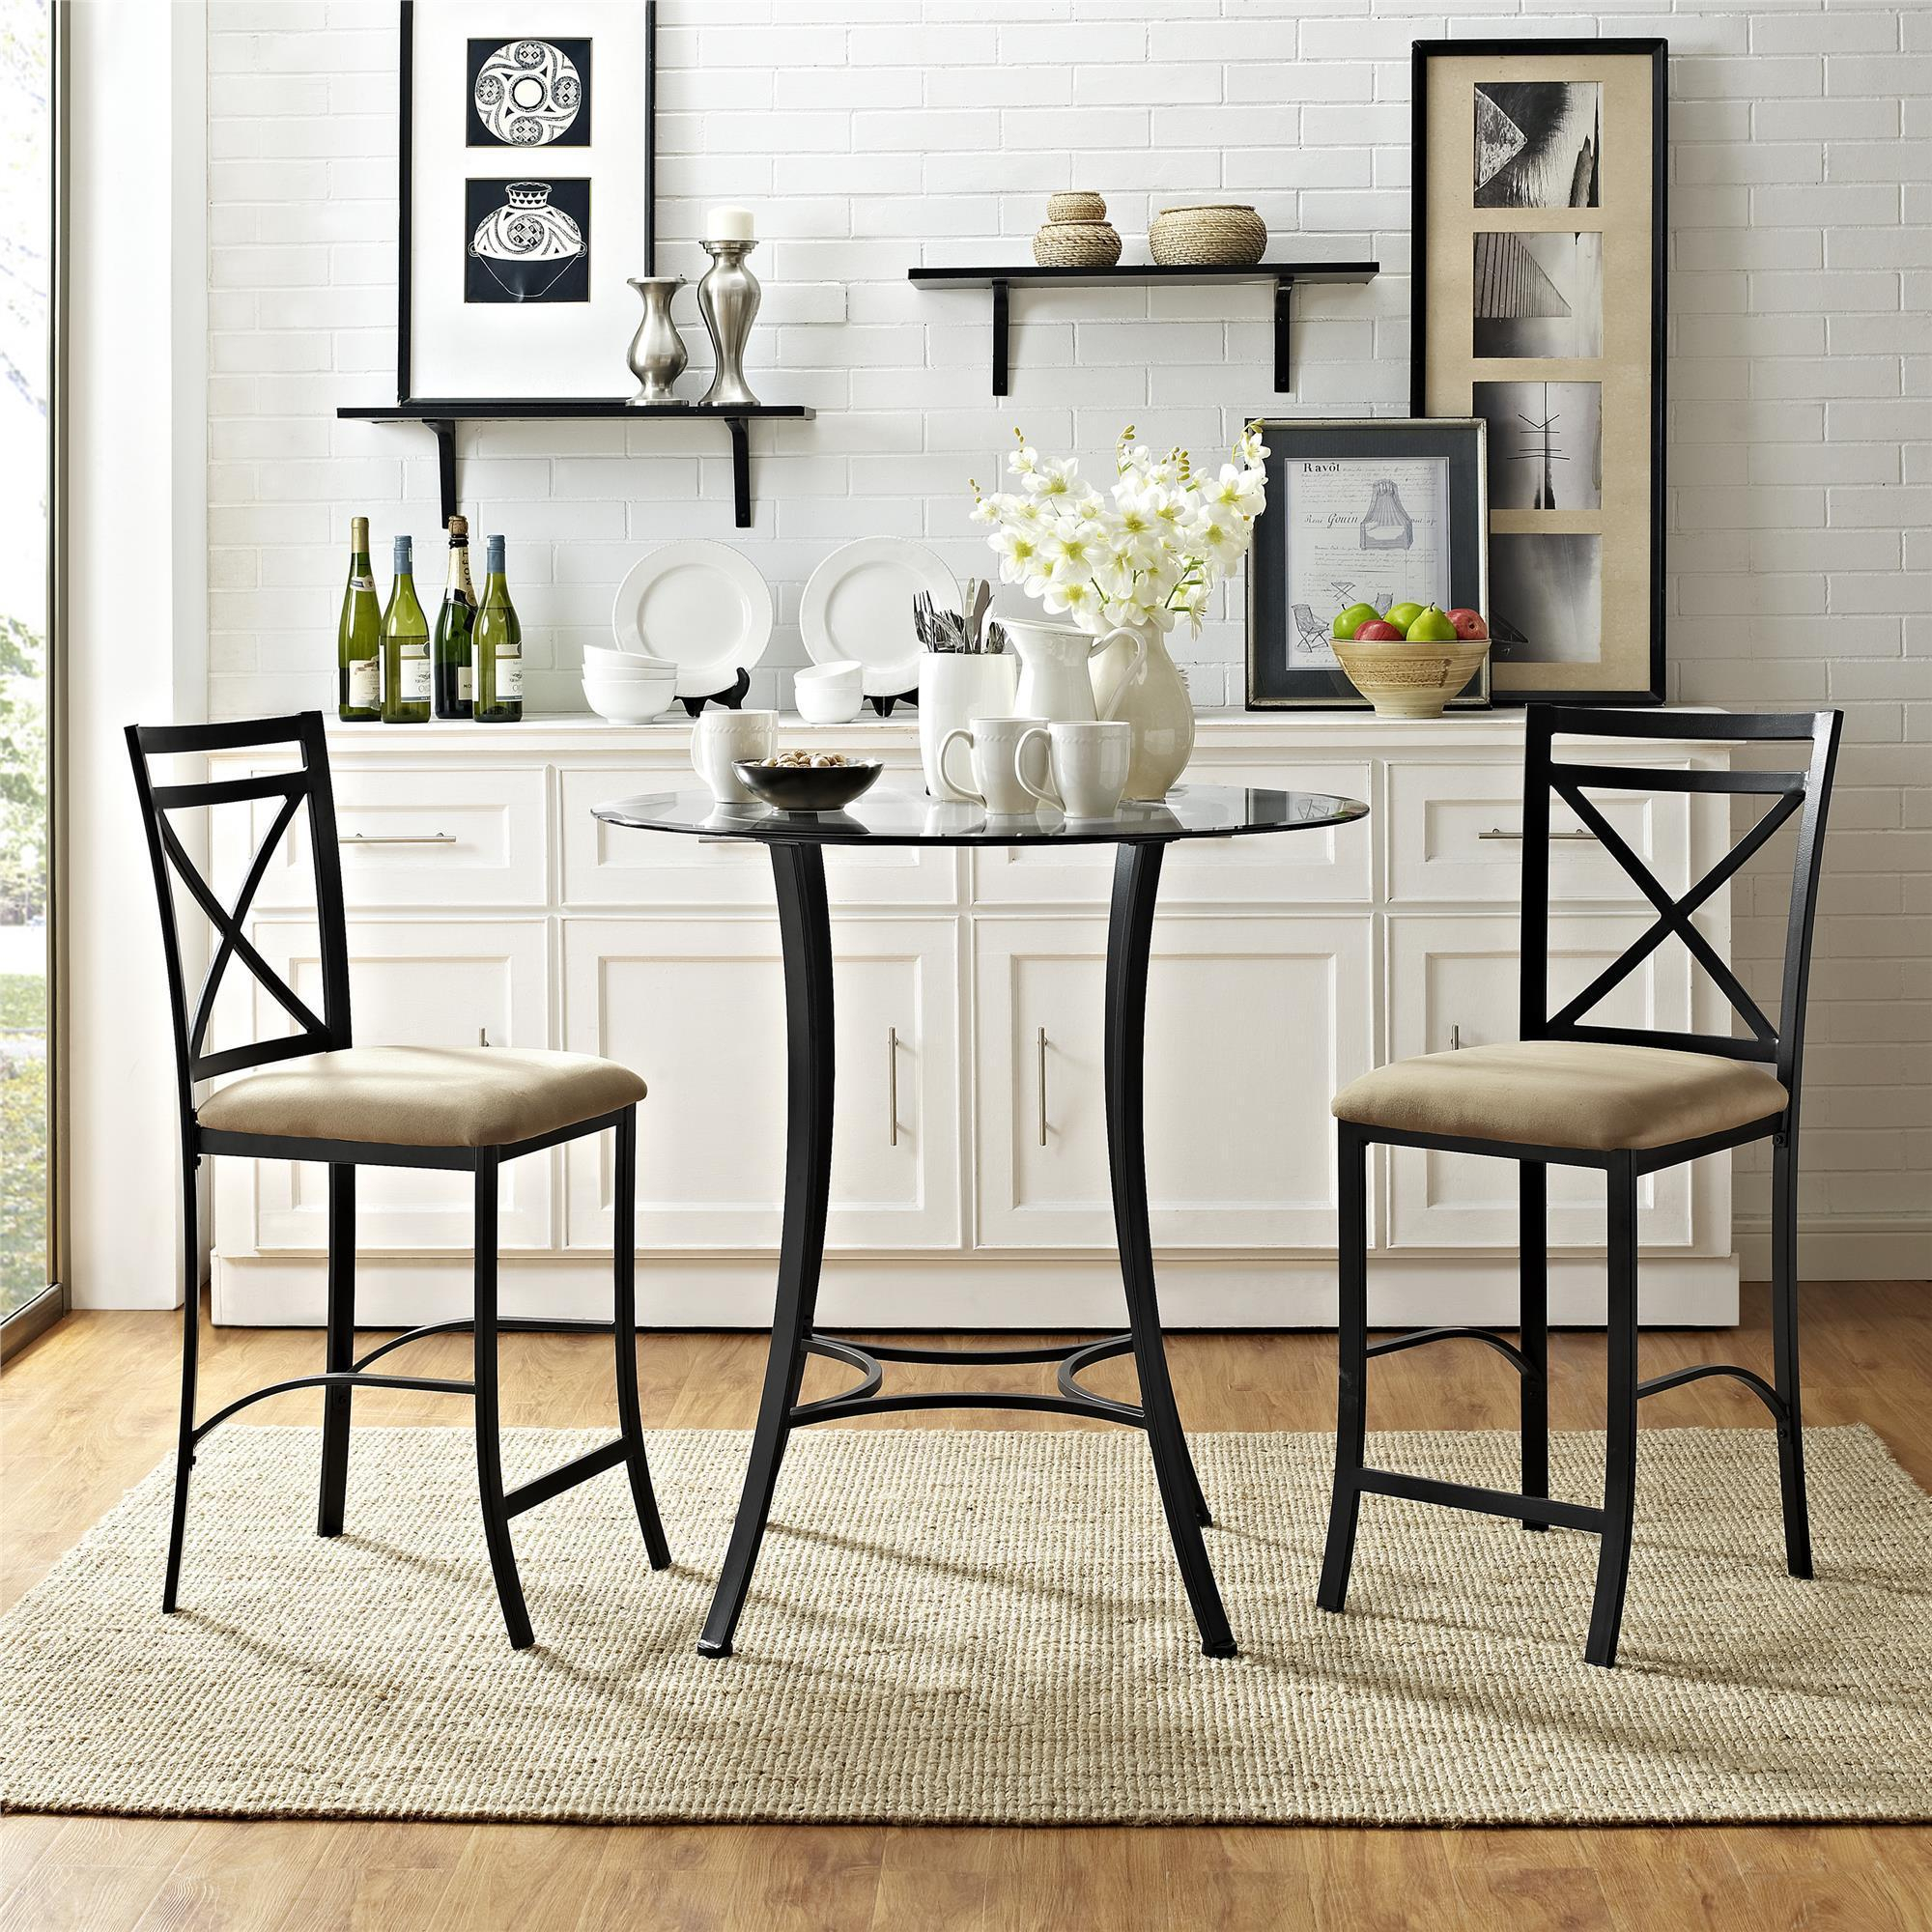 Dorel Living Valerie 3 Piece Counter Height Dining Set Within 2018 3 Piece Dining Sets (View 13 of 20)